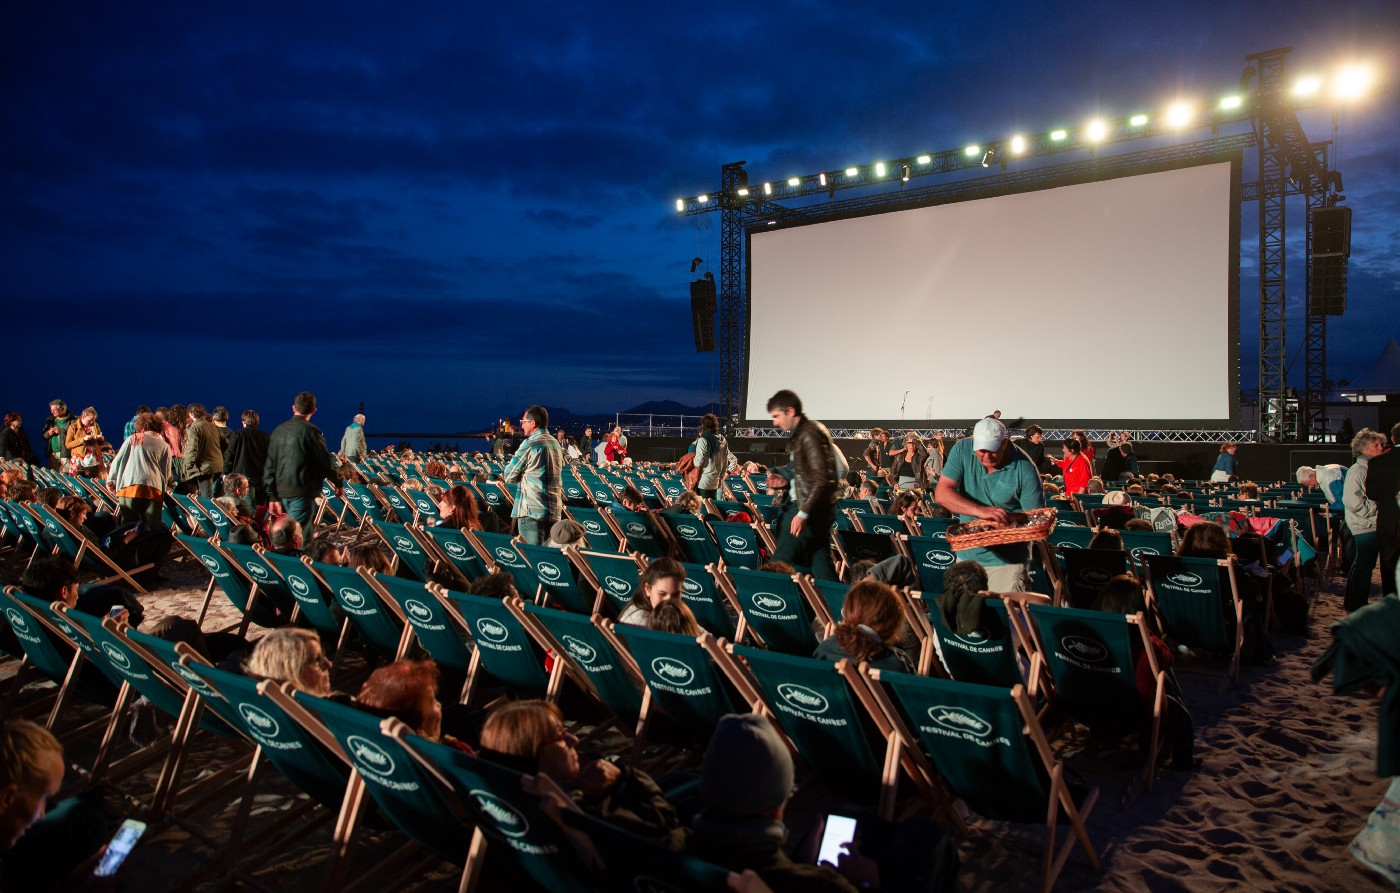 People sitting in seats in front of a large projector outdoors. The lights are on and some people are preparing stuff (moving around, buying food), while others have settled into their chairs and are awaiting the movie.